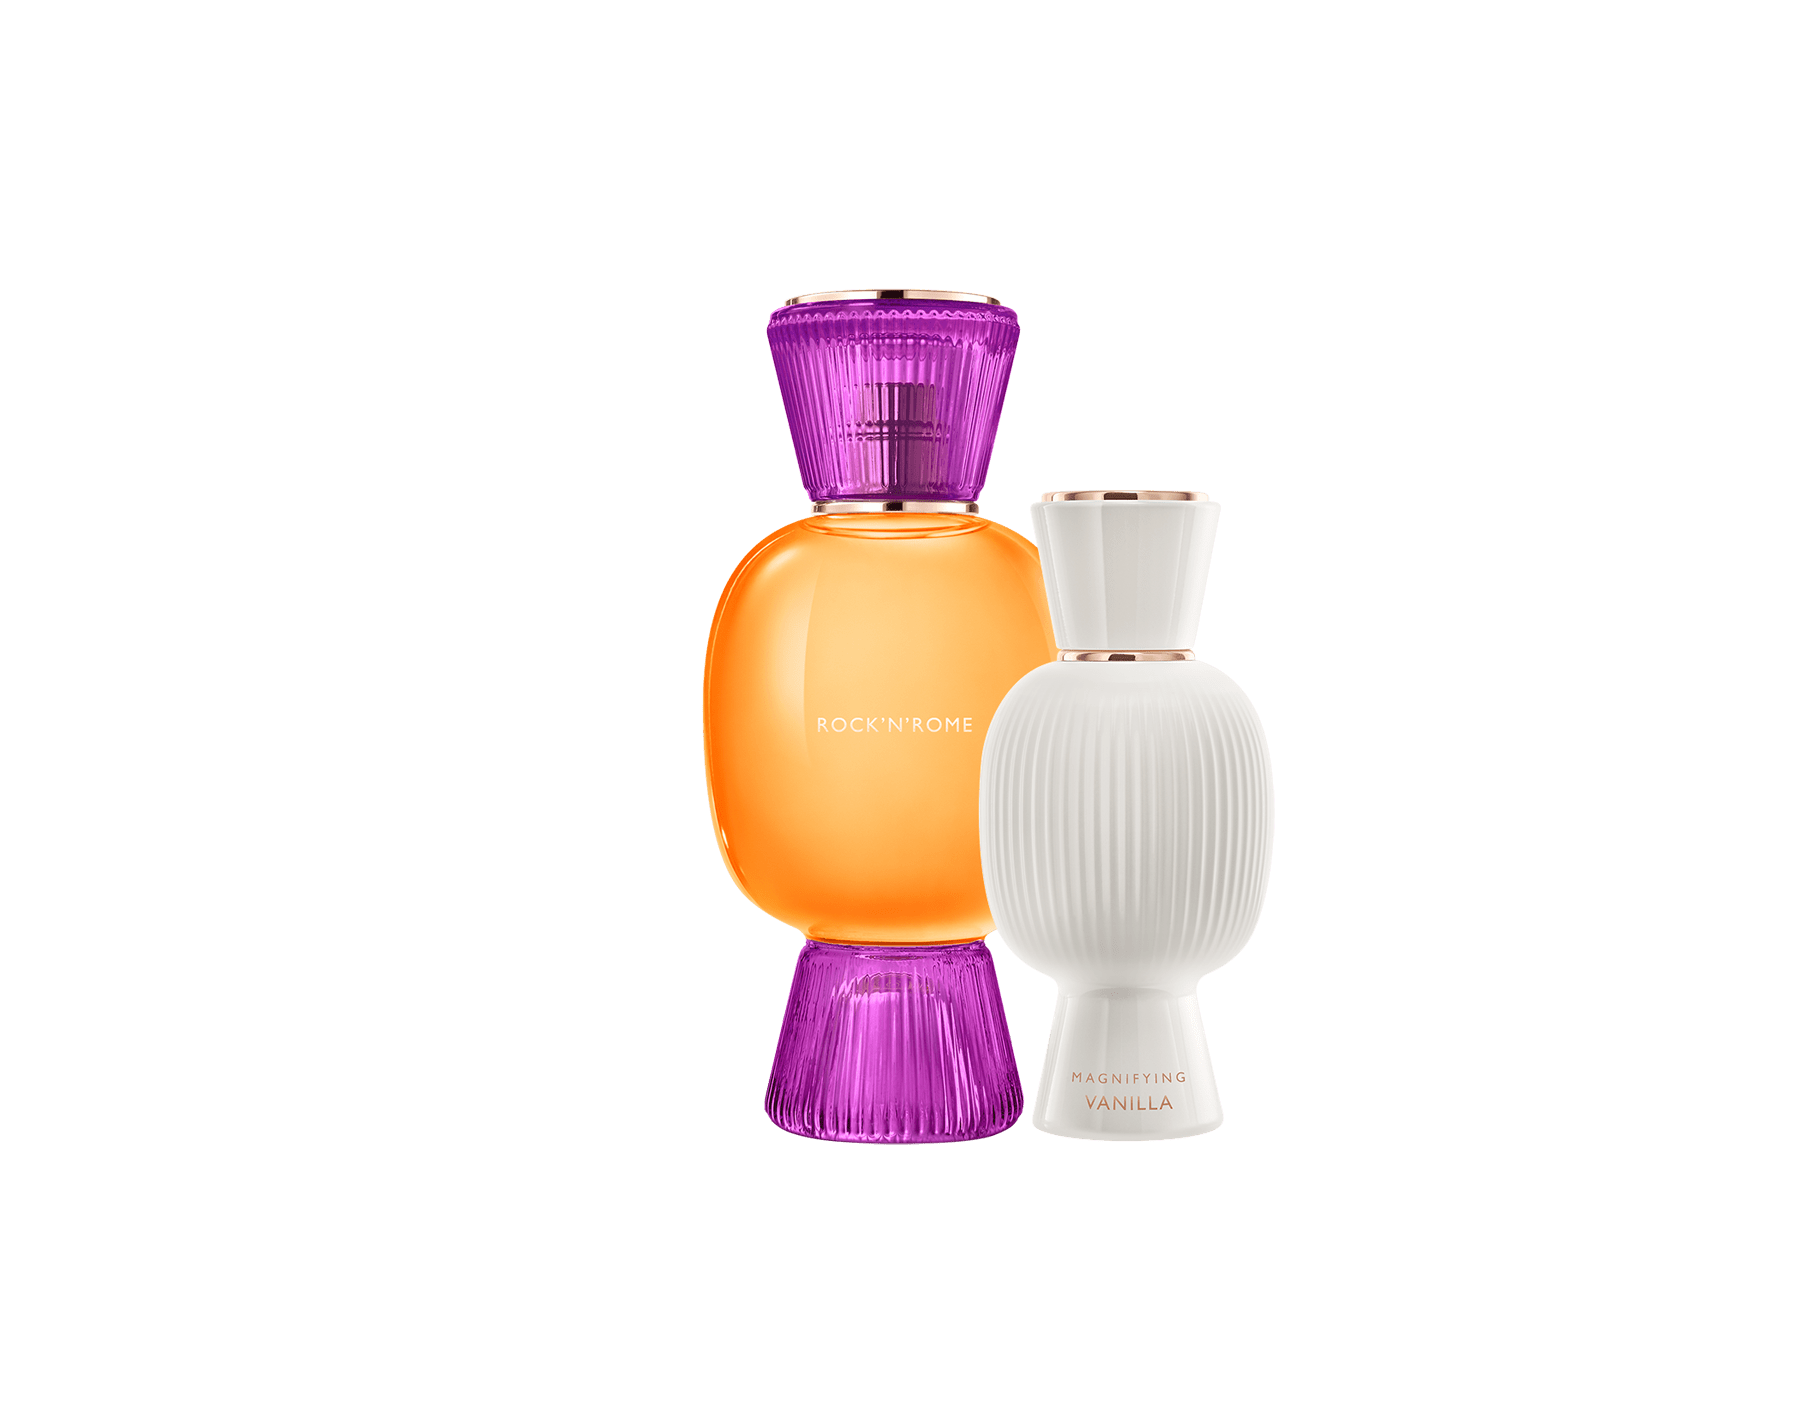 An exclusive perfume set, as bold and unique as you. The liquorous floriental Rock'n'Rome Allegra Eau de Parfum blends with the addictive aroma of the Magnifying Vanilla Essence, creating an irresistible personalised women's perfume. Perfume-Set-Rock-n-Rome-Eau-de-Parfum-and-Vanilla-Magnifying image 1